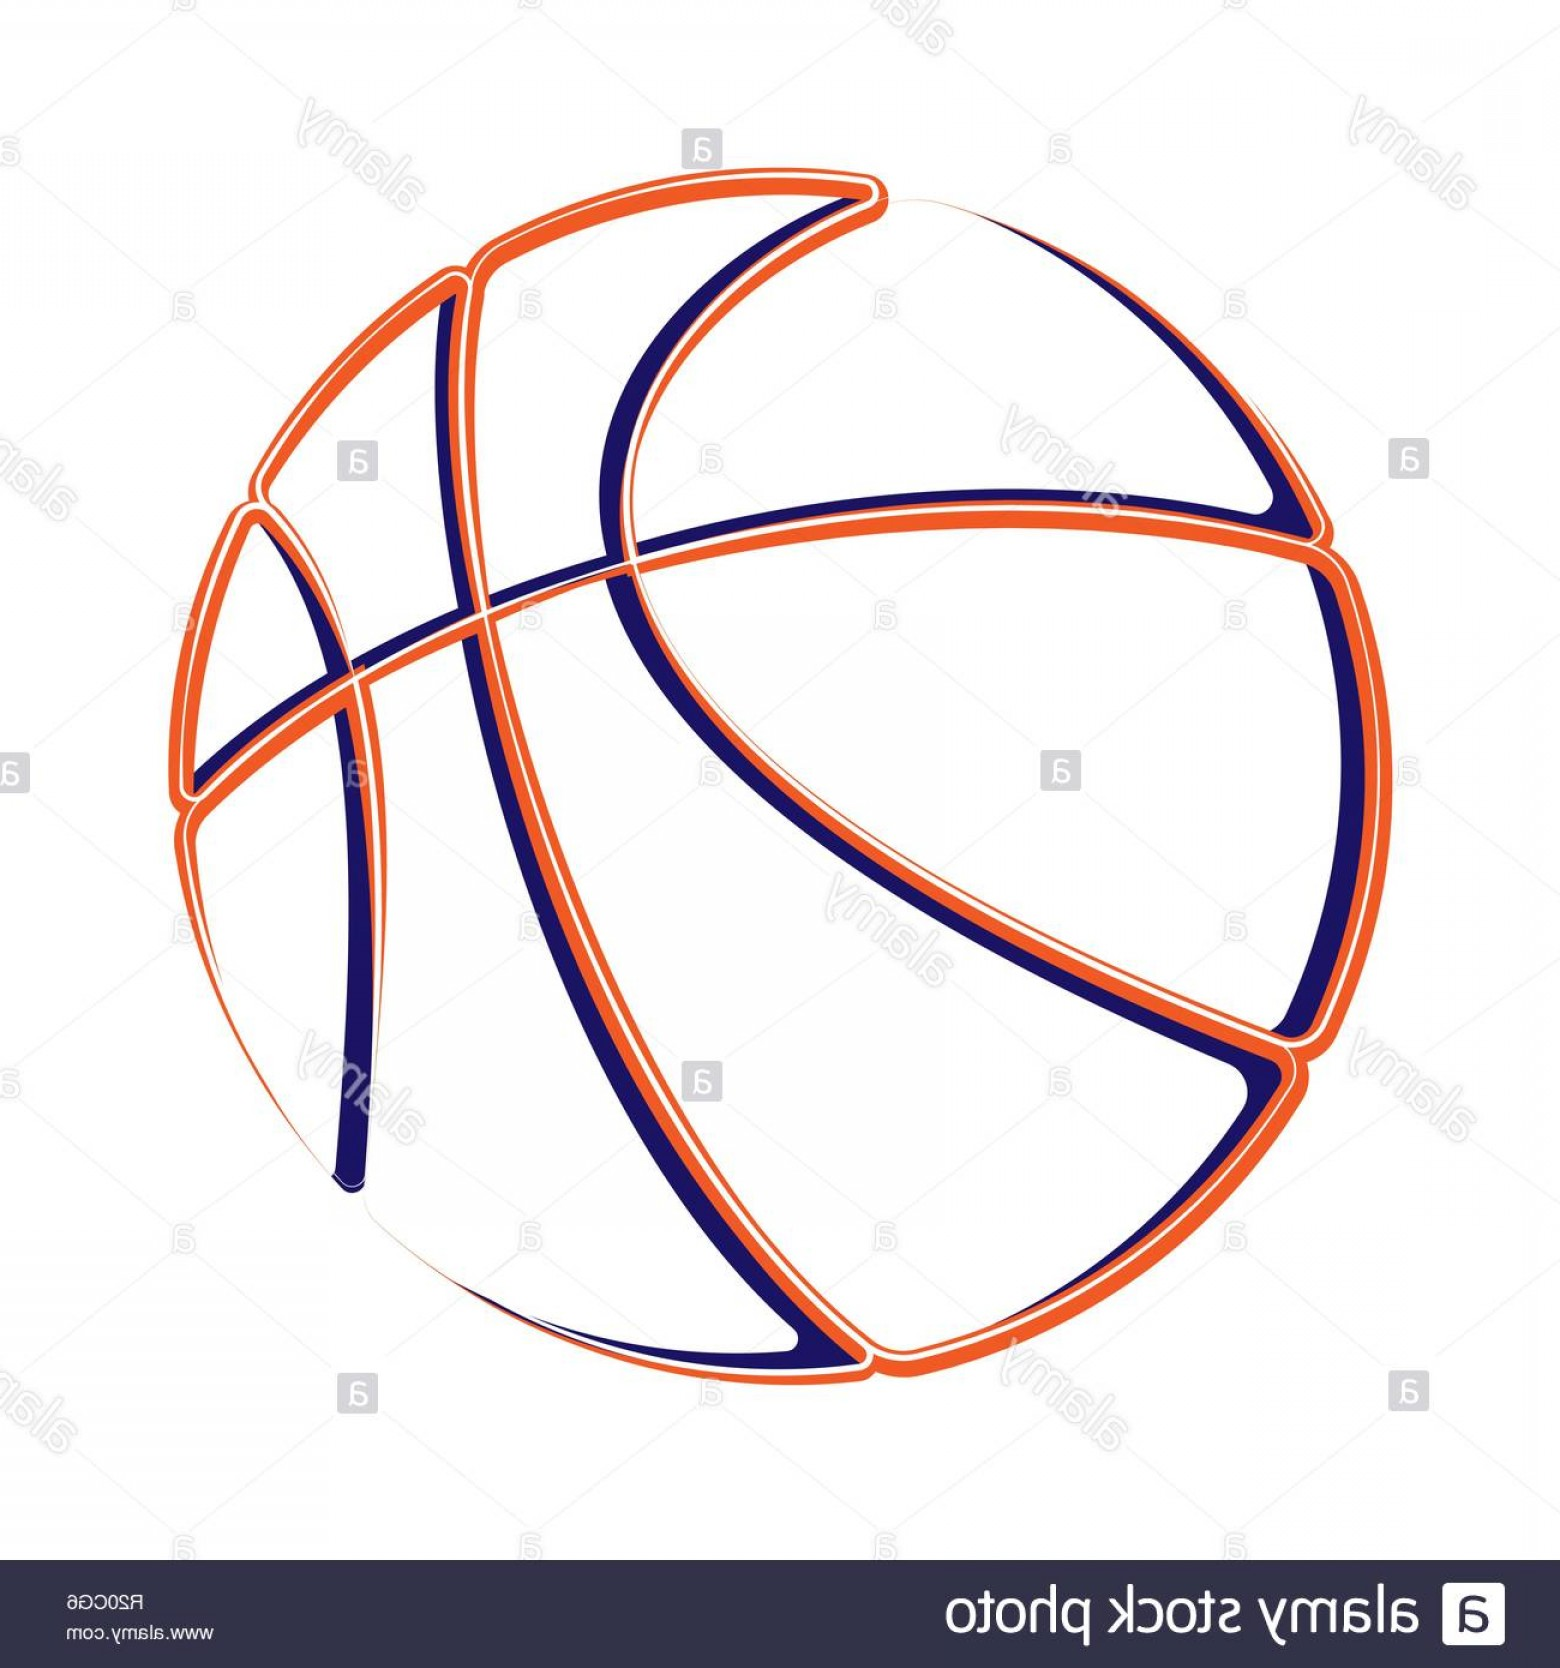 Color Basketball Outline Vector: Color Outline Basketball Symbol Isolated On White Background Image